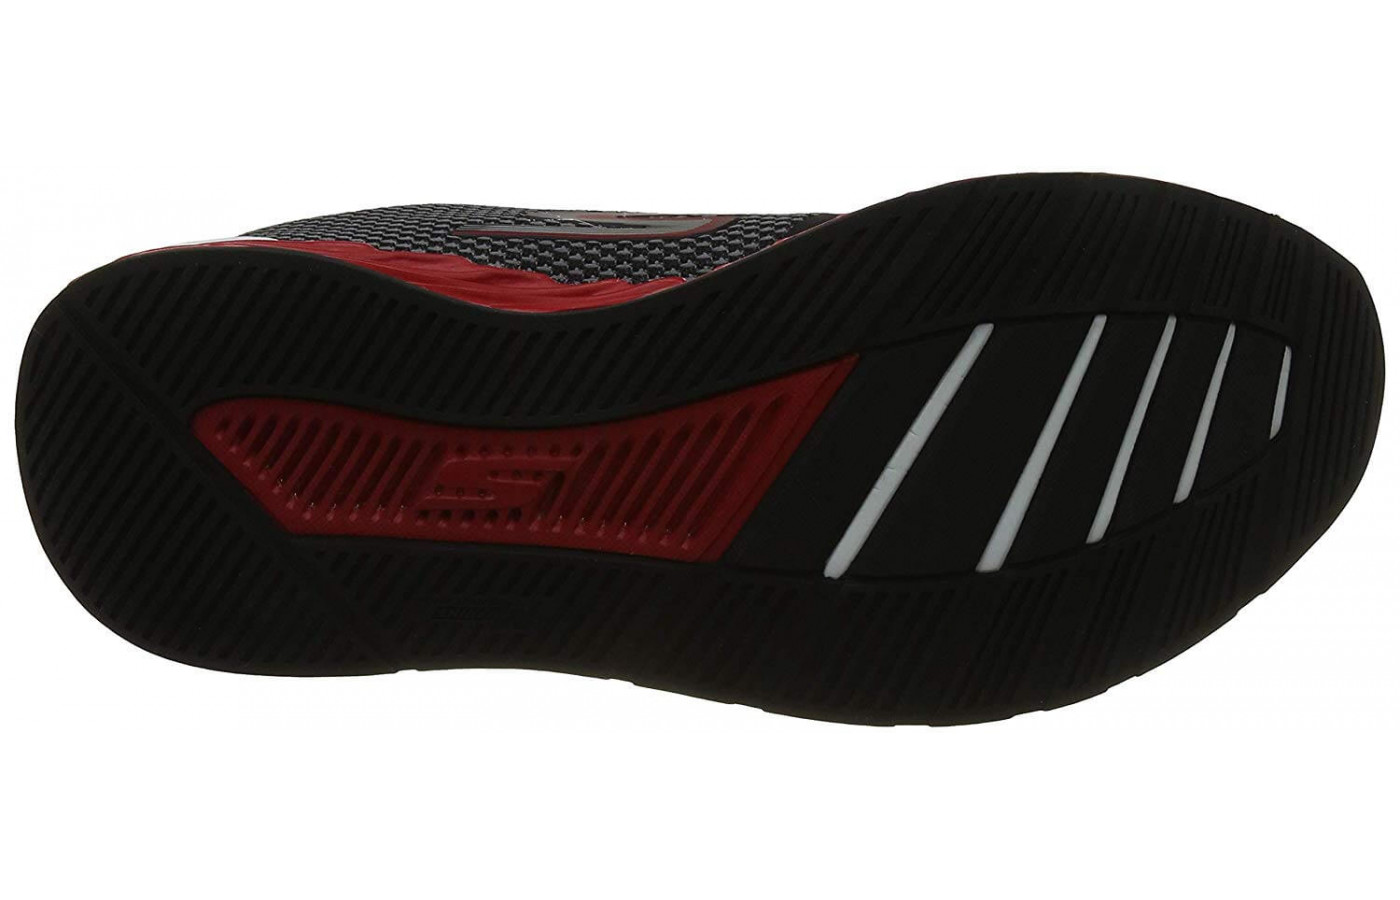 Skechers Gorun Forza 3 bottom